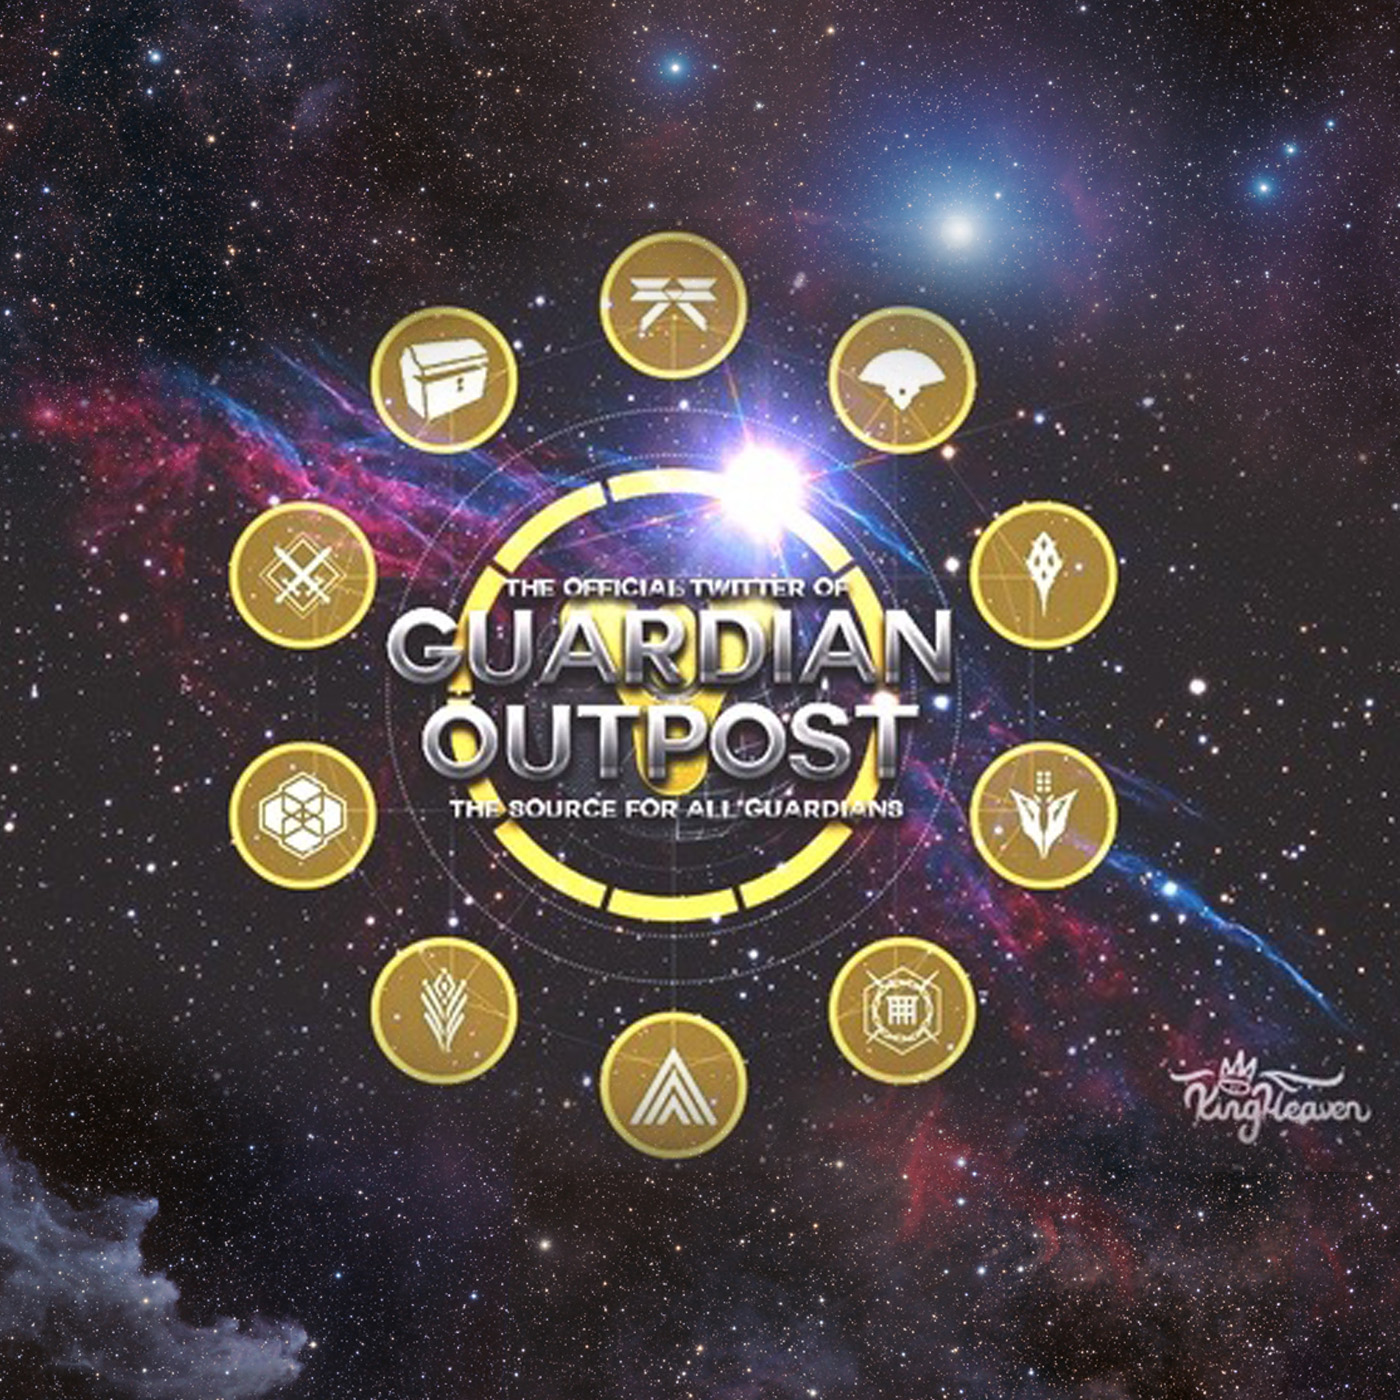 Guardian Outpost Podcast